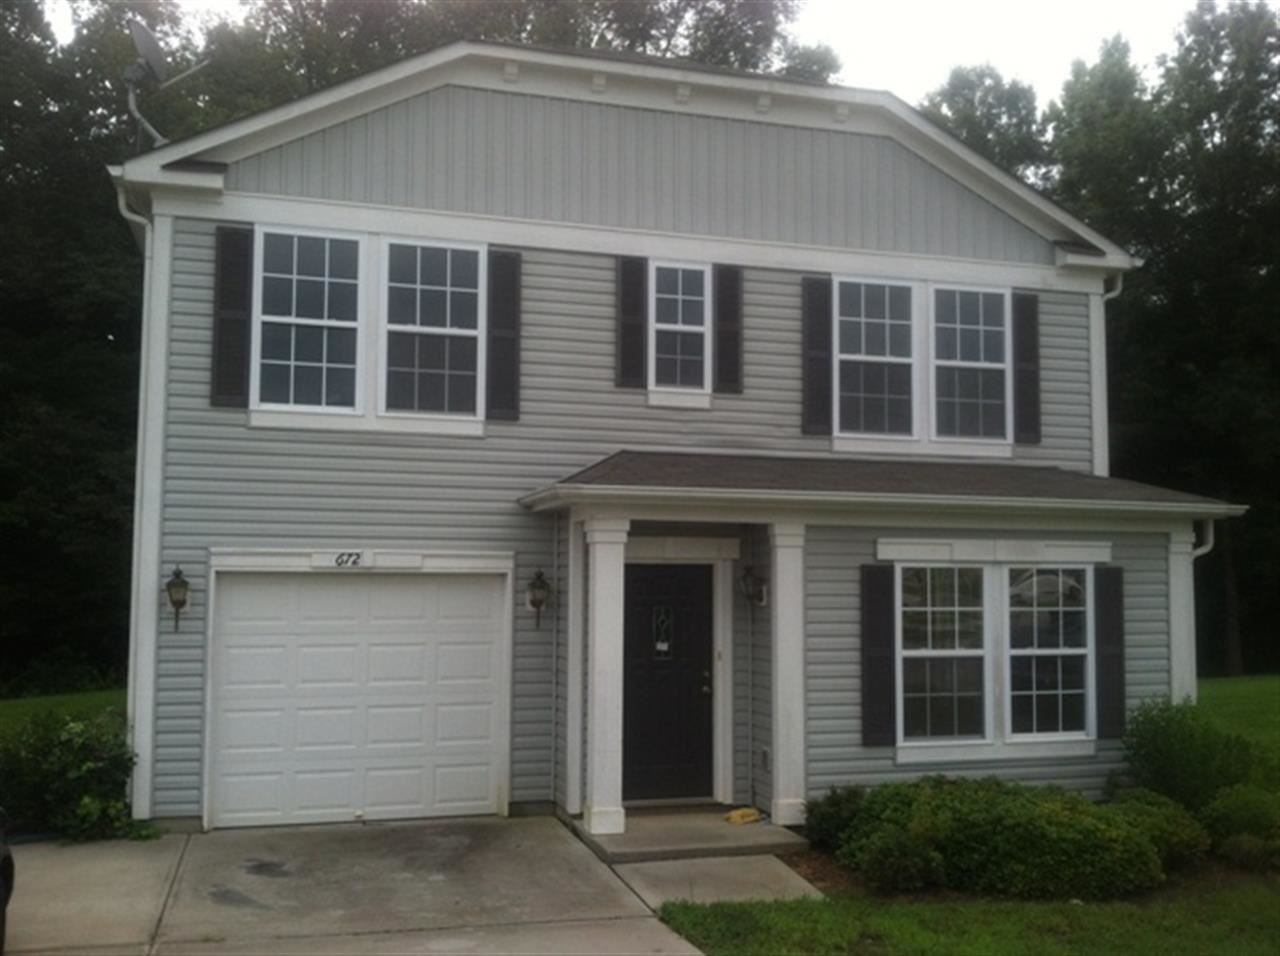 672 Carybrook Ct, York, SC 29745